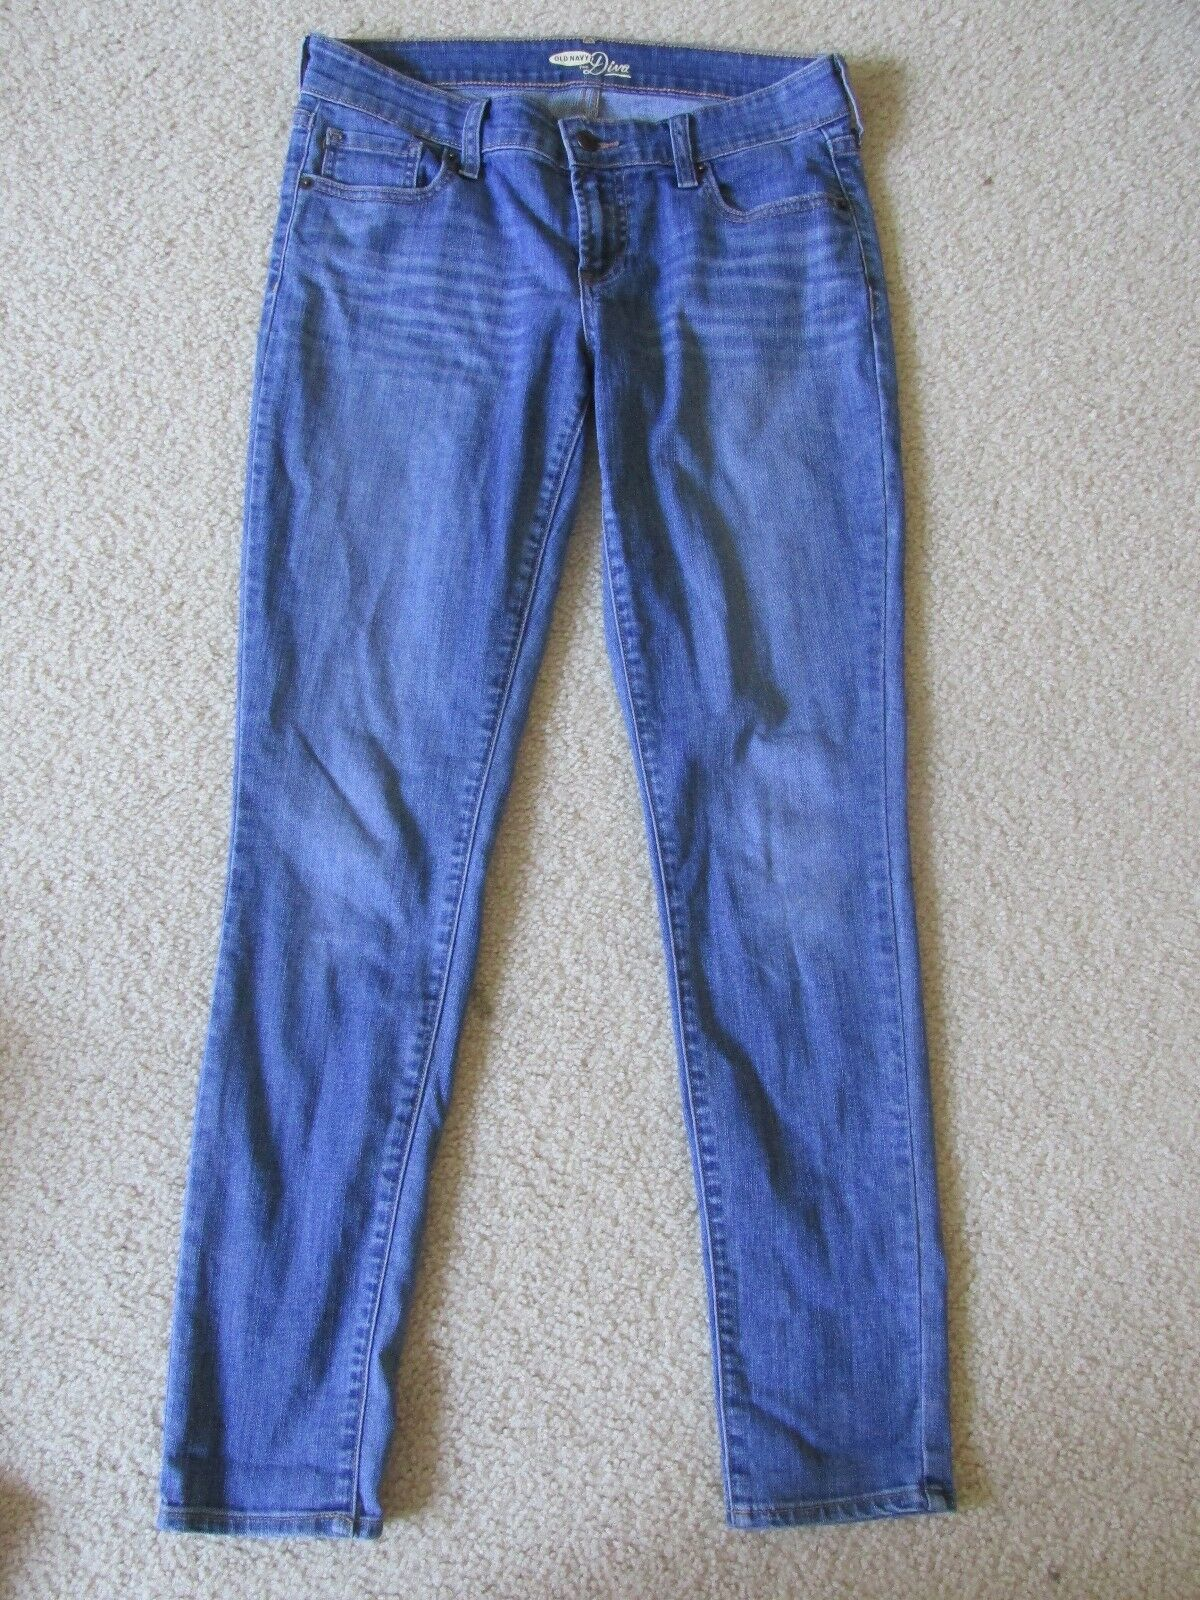 WOMEN'S OLD NAVY THE DIVA MEDIUM blueE JEAN PANTS SIZE 4 DISTRESSED SKINNY FIT